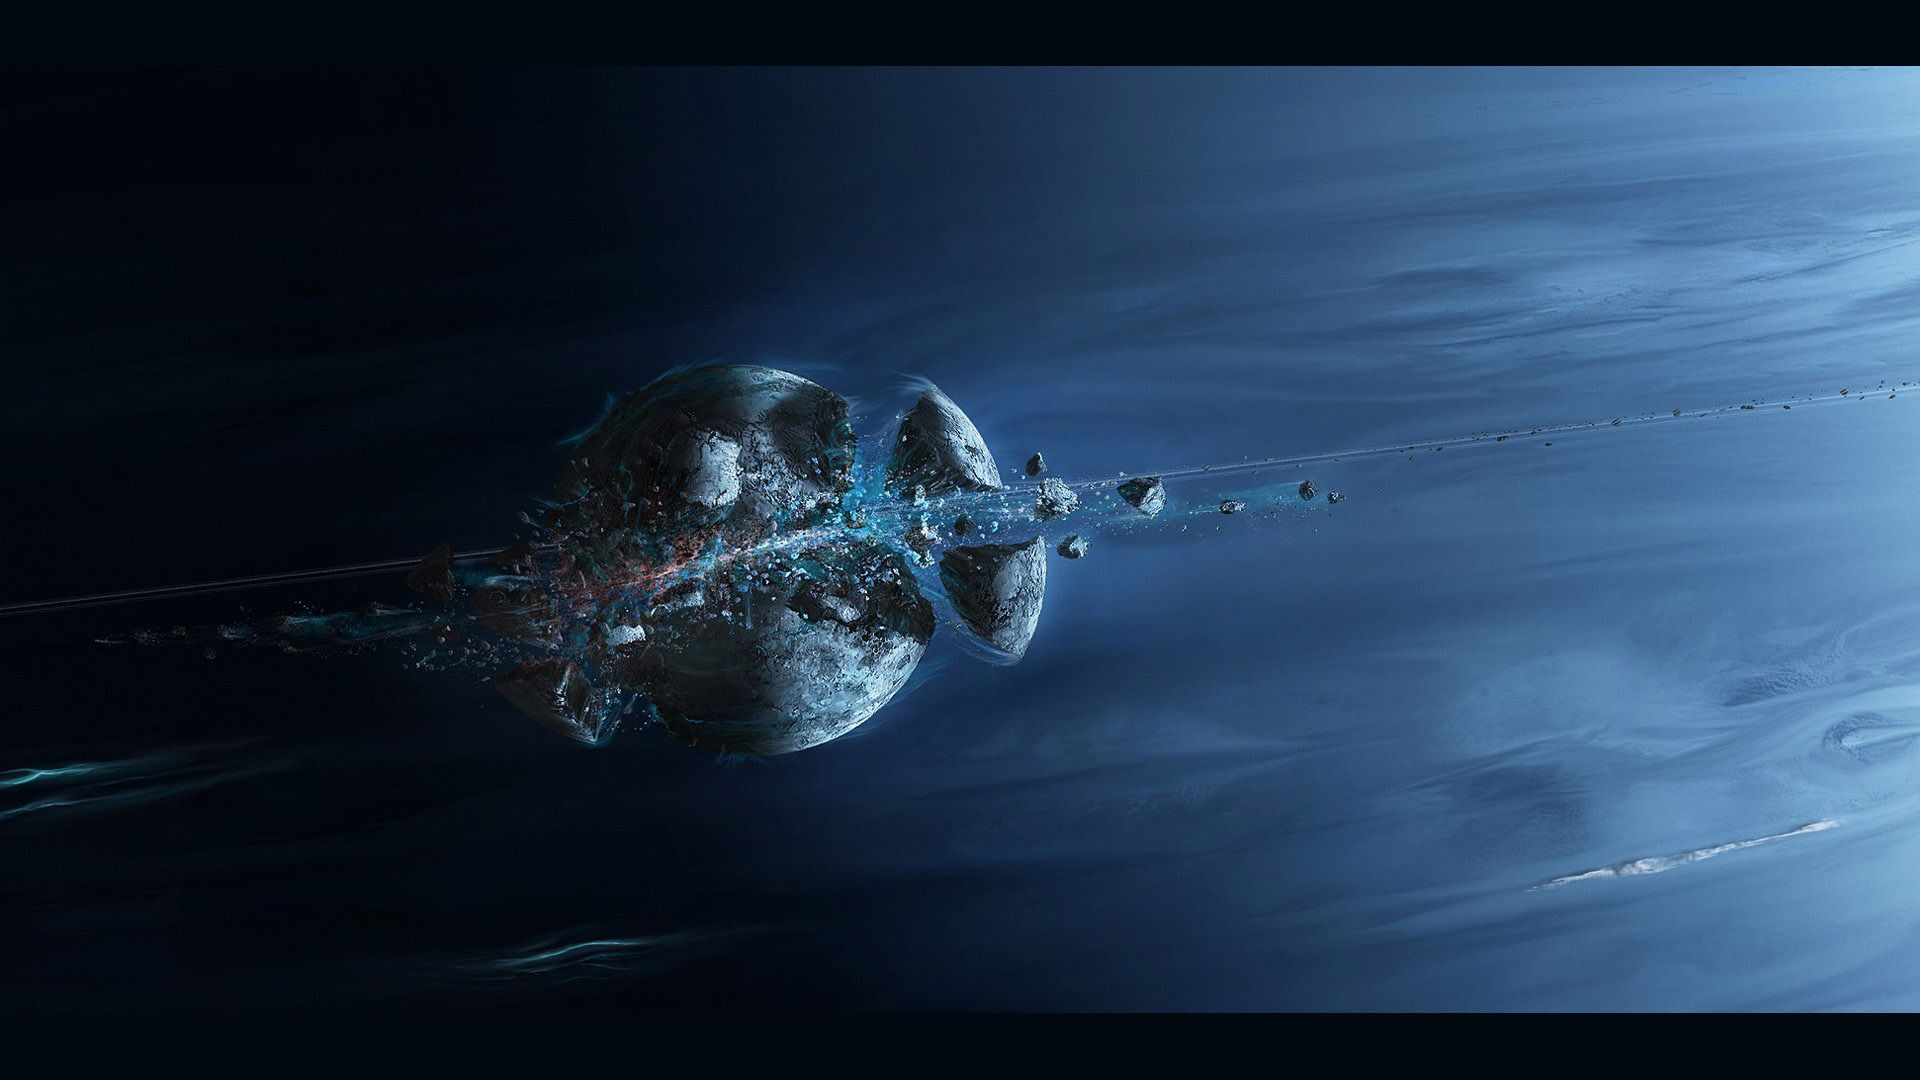 awesome exploding planet 15340 Check more at http://www.finewallpapers.eu/pin/23018/